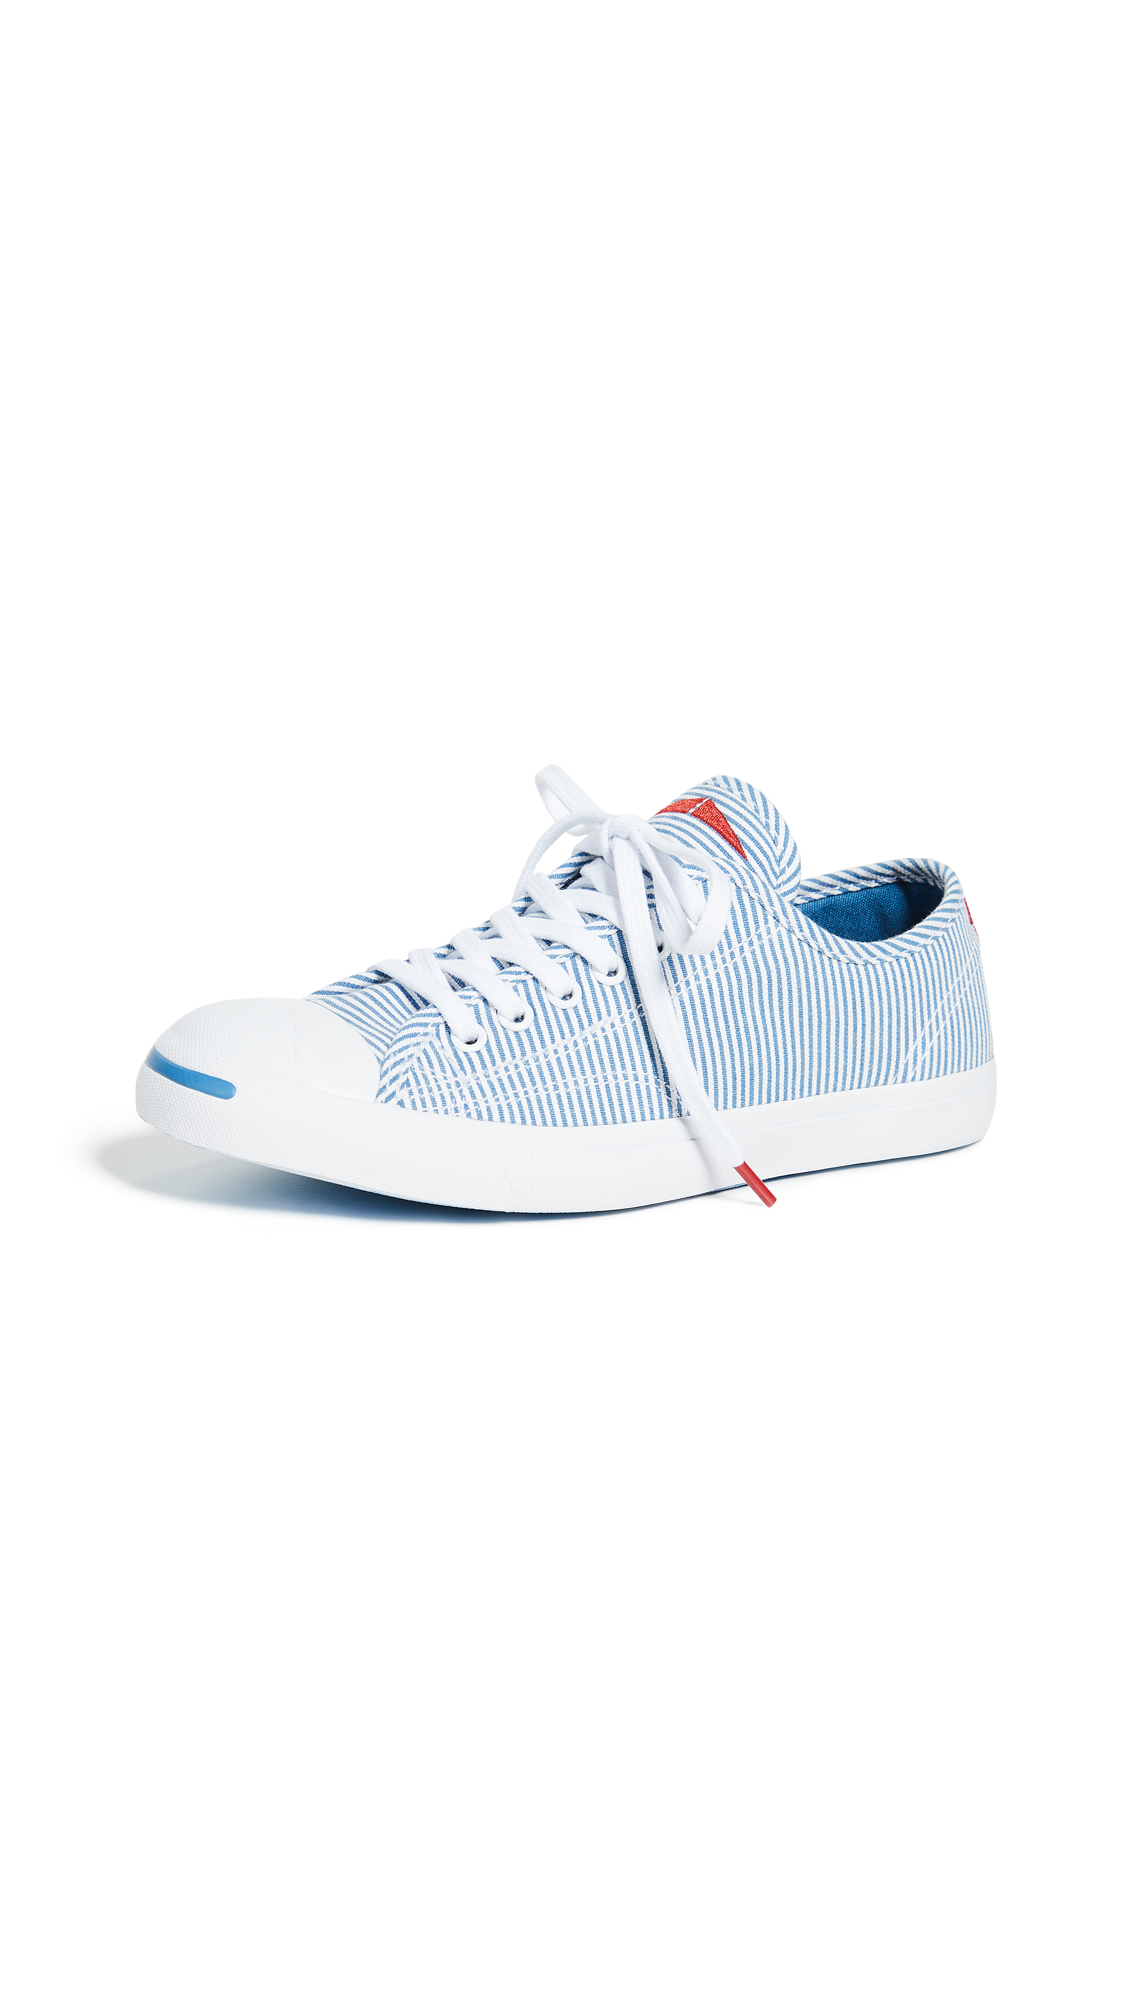 Converse Jack Purcell Striped Sneakers - Aegean Storm